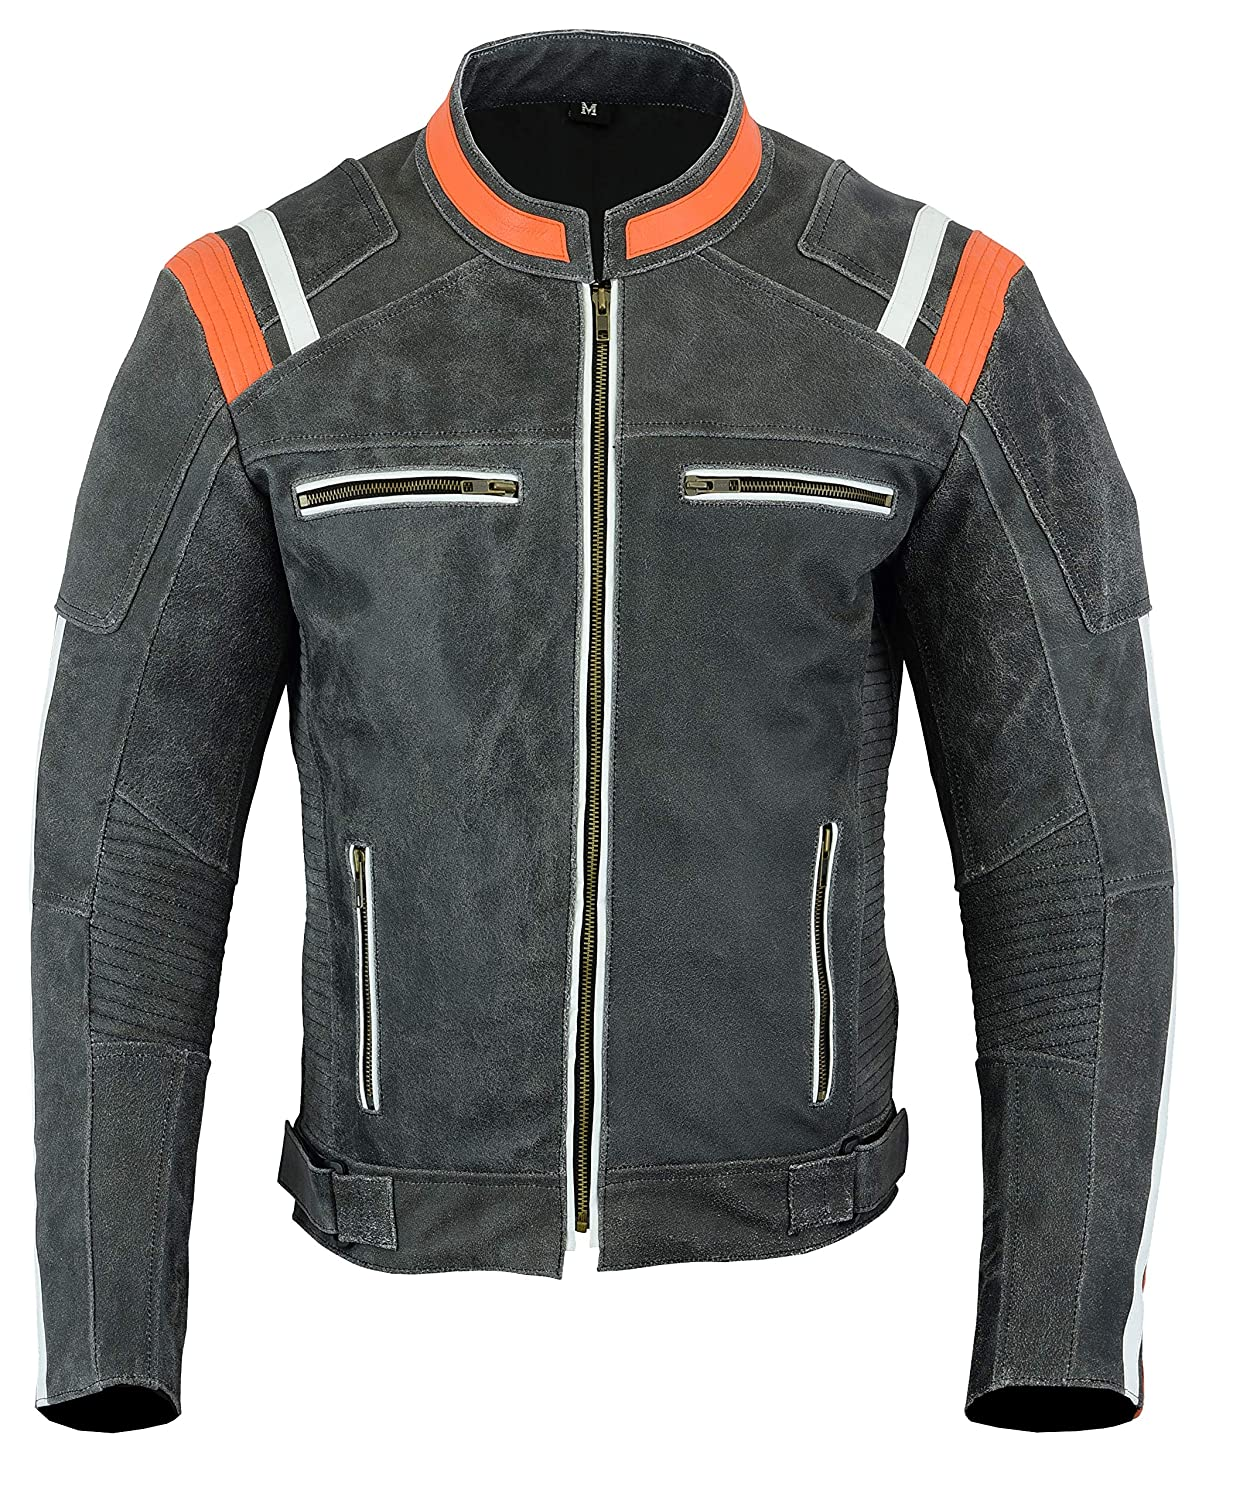 CDM product Mens MOTORCYCLE LEATHER JACKET VINTAGE BIKERS STYLE BLACK/ORANGE DC-4099 (M) big image